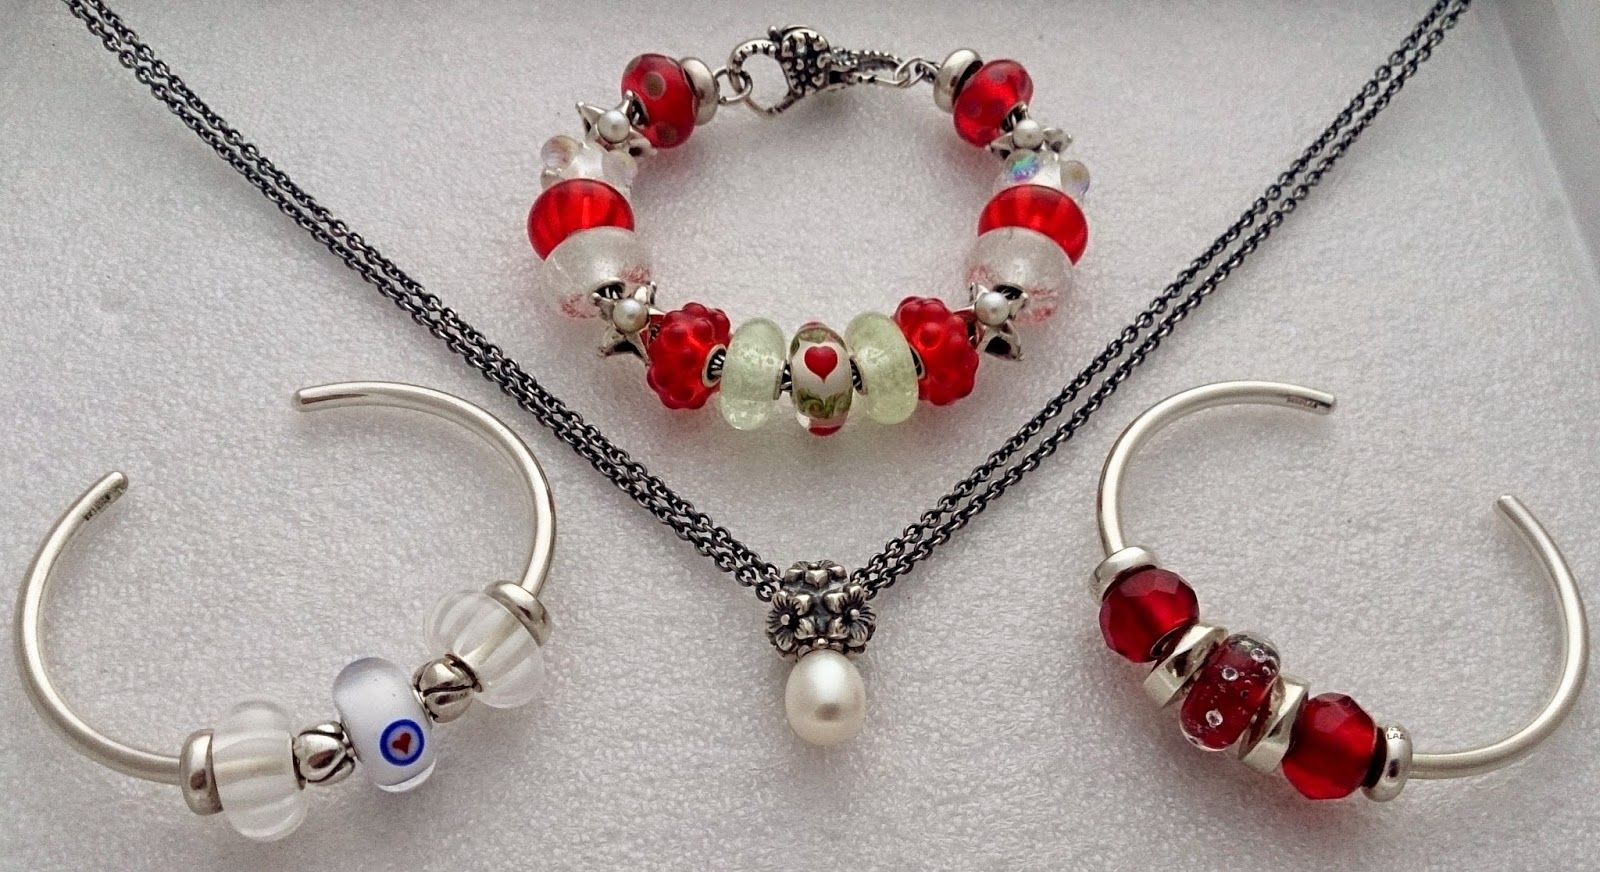 Curling Stones for Lego People: Themed Jewellery - Valentine's Day: Traditional Bracelet, Bangle & Fantasy Necklace Set